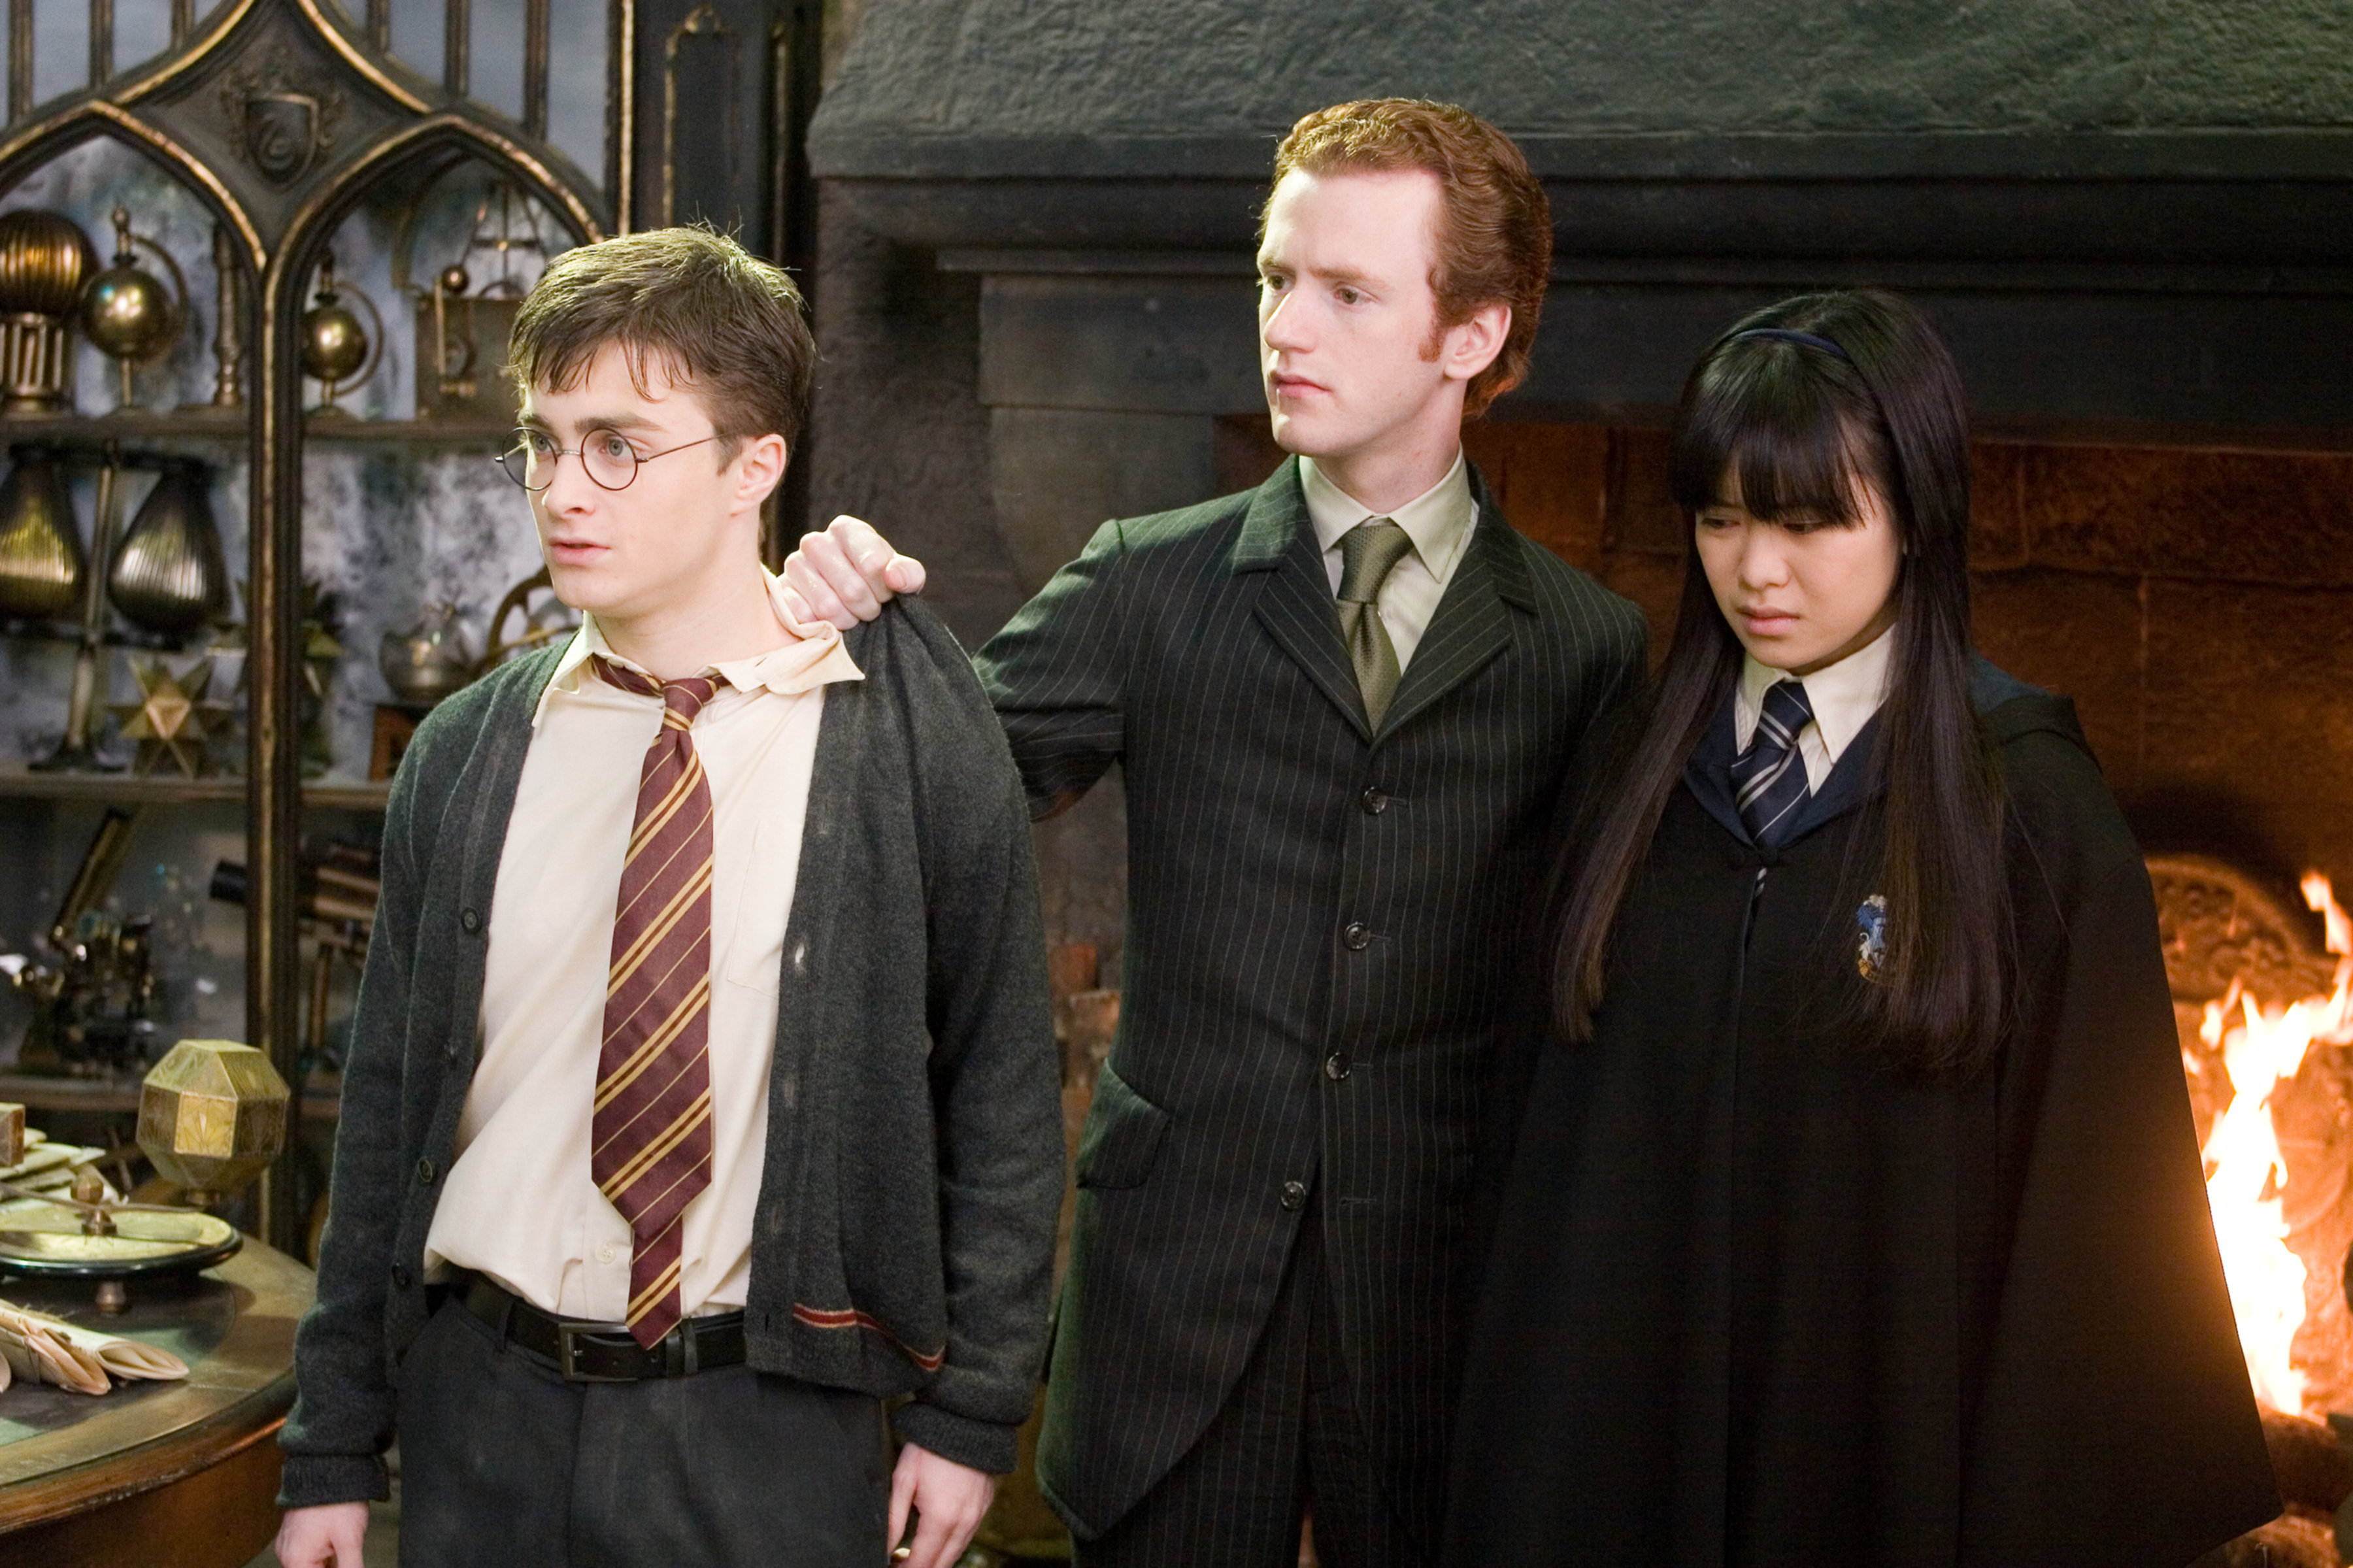 Rather than Fred, it should have been Percy Weasley who should have died in the deathly hollows for being such a brat.